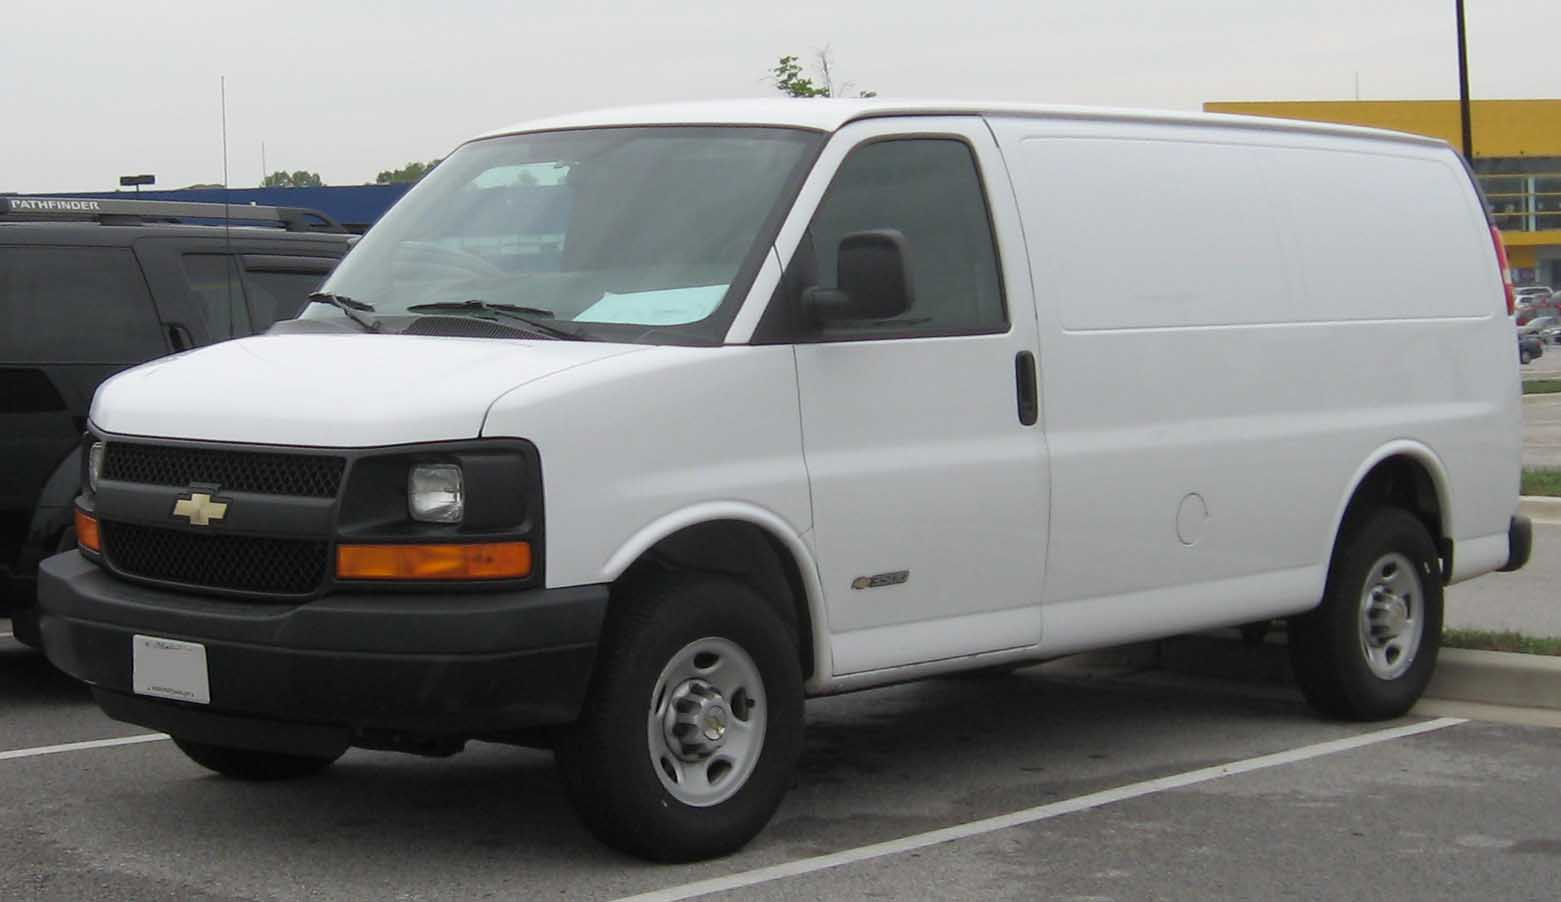 All Chevy 2014 chevy express : File:Chevrolet-Express-Van.jpg - Wikimedia Commons